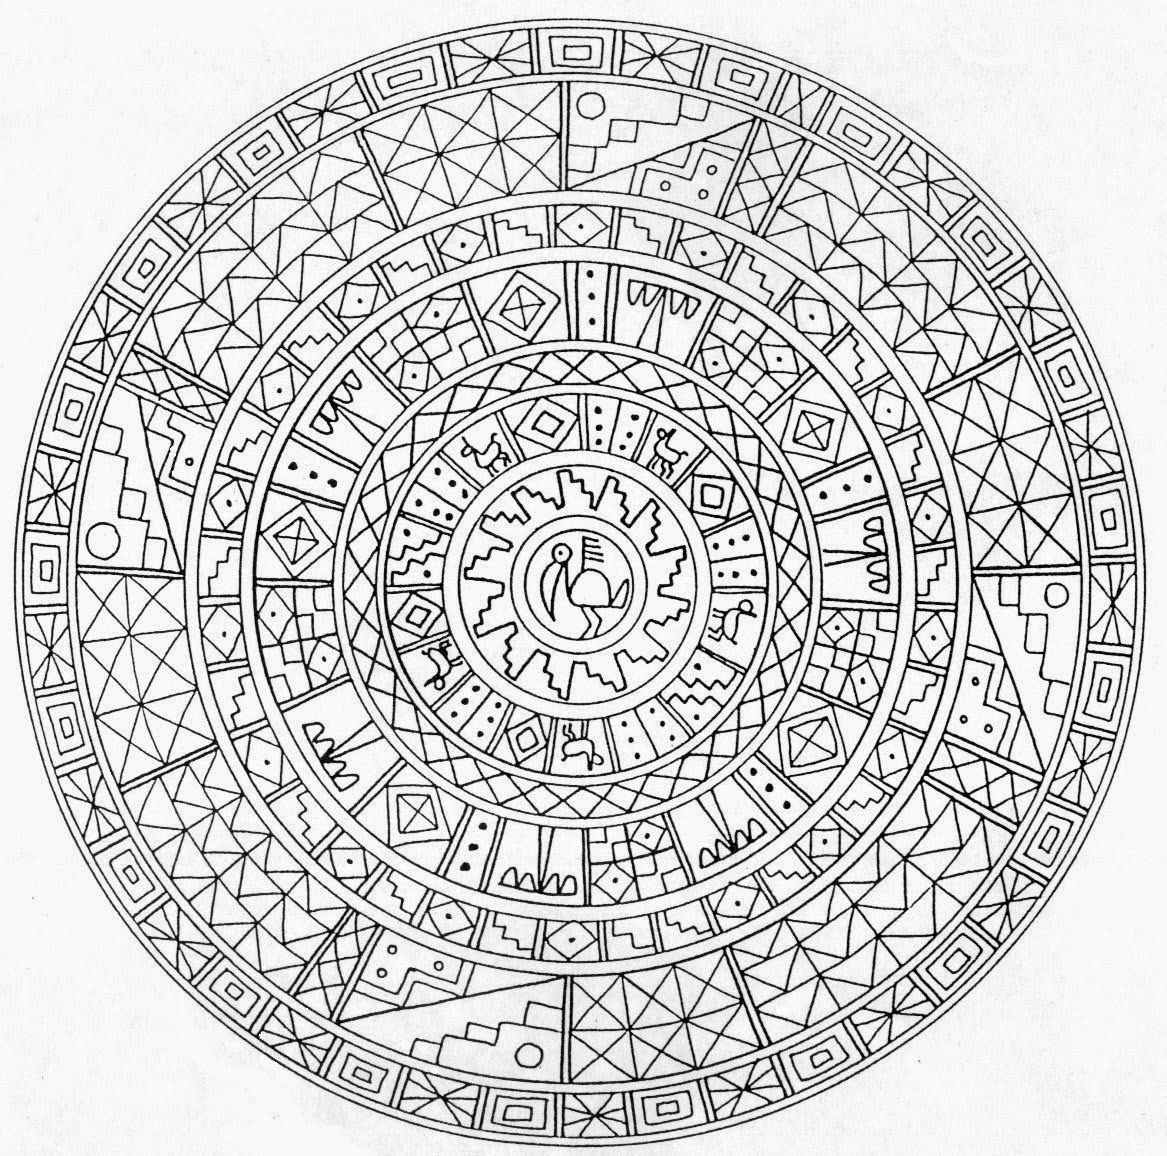 mandala coloring pages free printable adults printable mandalas for adults mandala printable adults free pages coloring